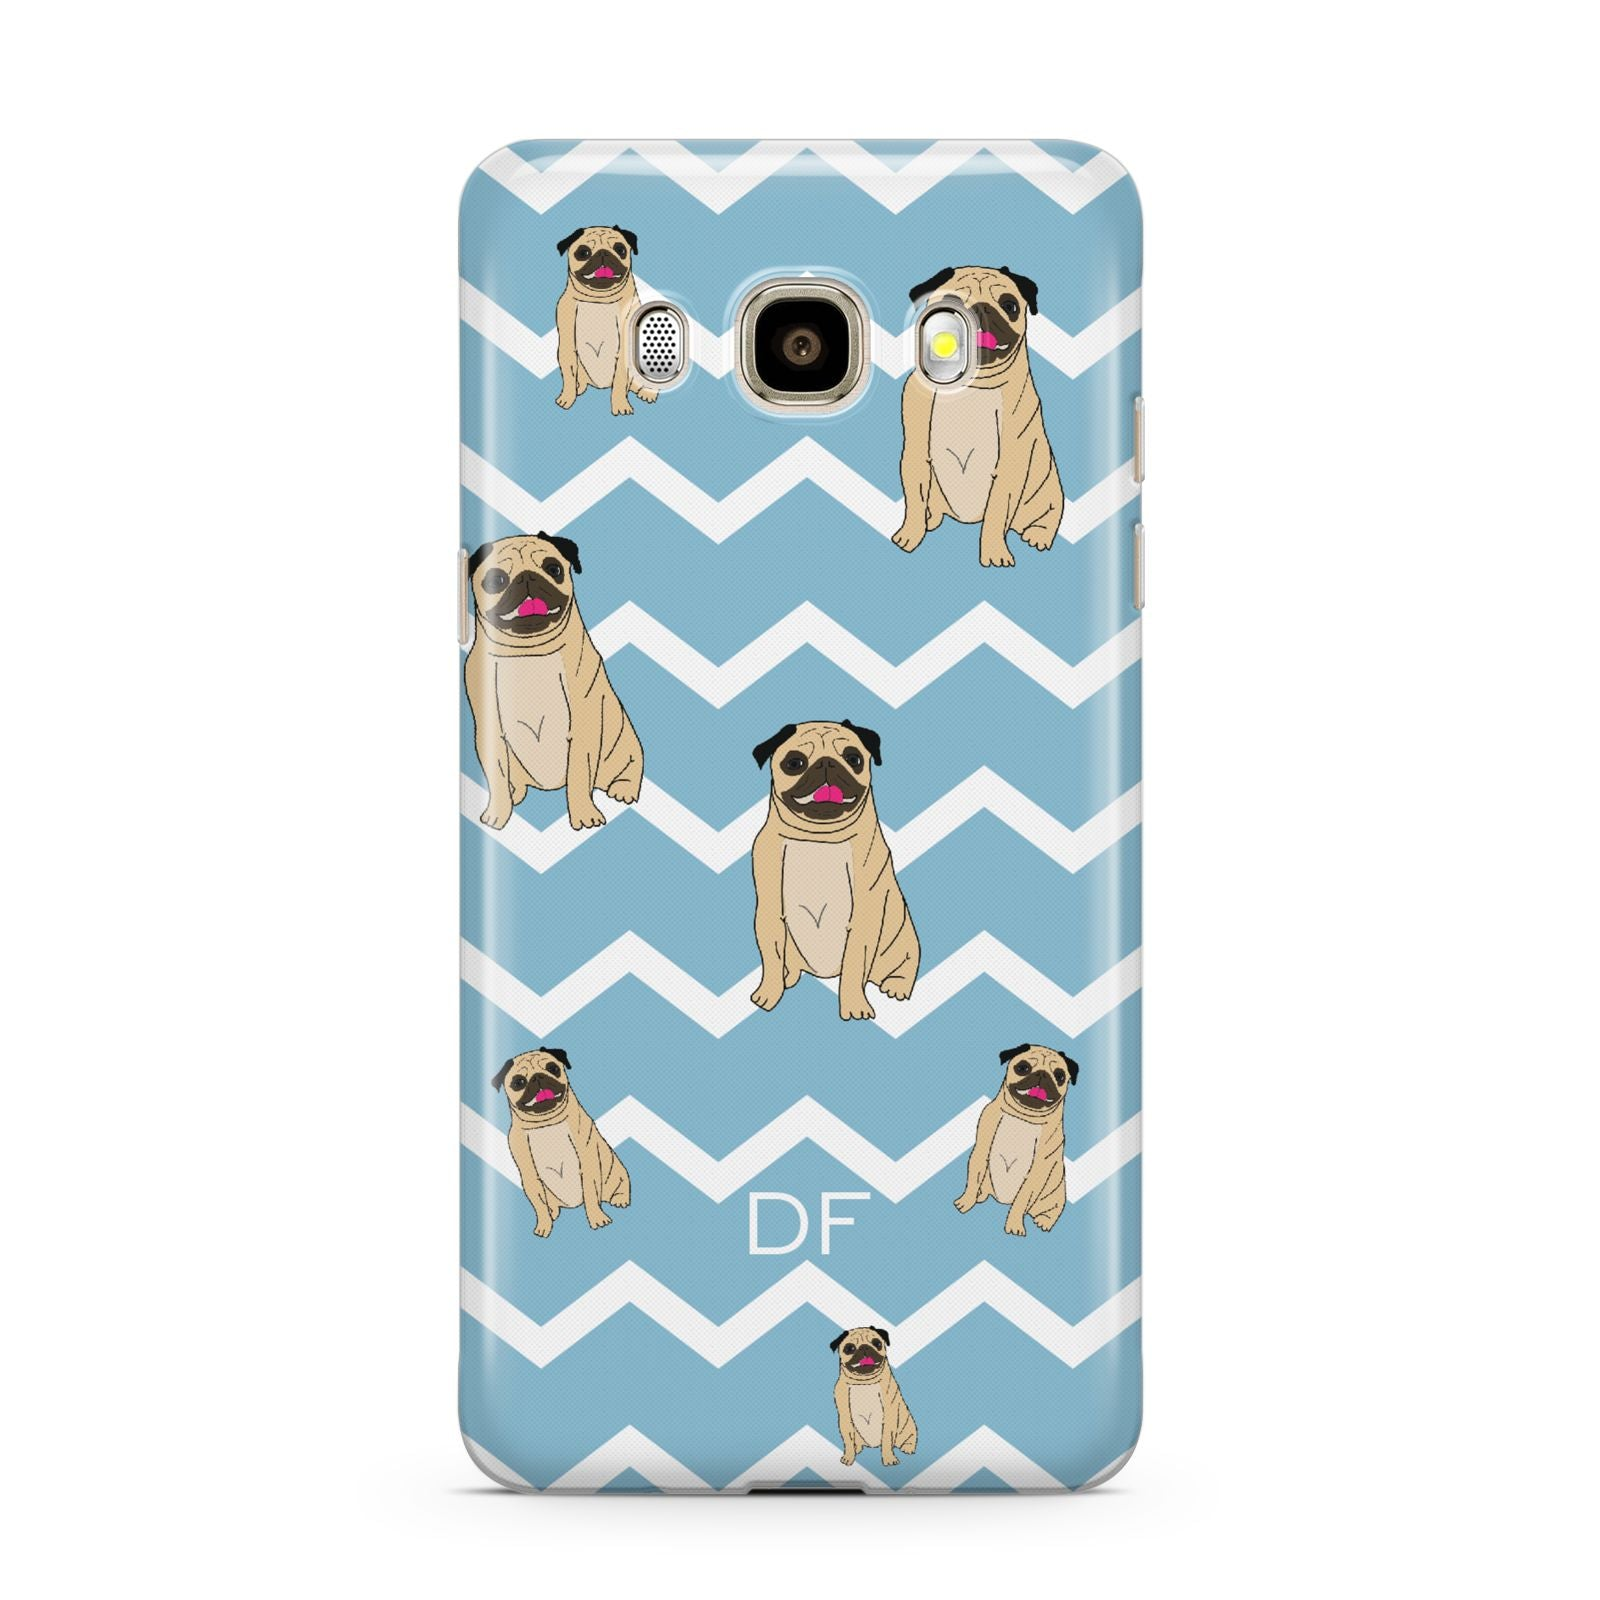 Personalised Pug Initials Samsung Galaxy J7 2016 Case on gold phone